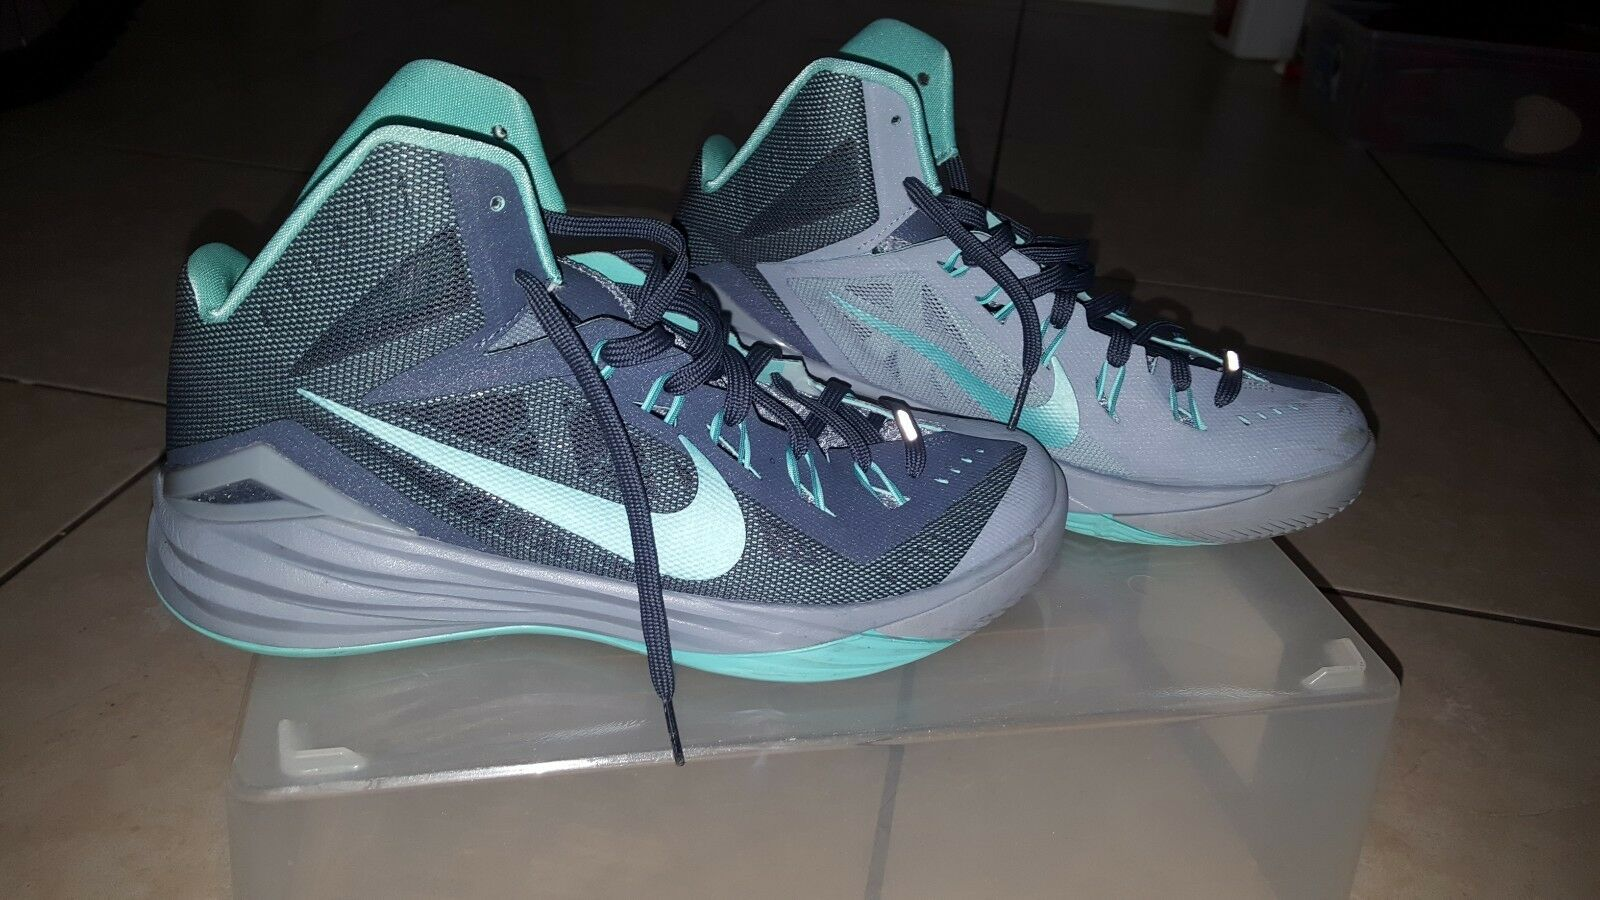 Nike hyperdunk basketball shoes size 9 turquoise shirt & dark grey with shirt turquoise and hat 43681b